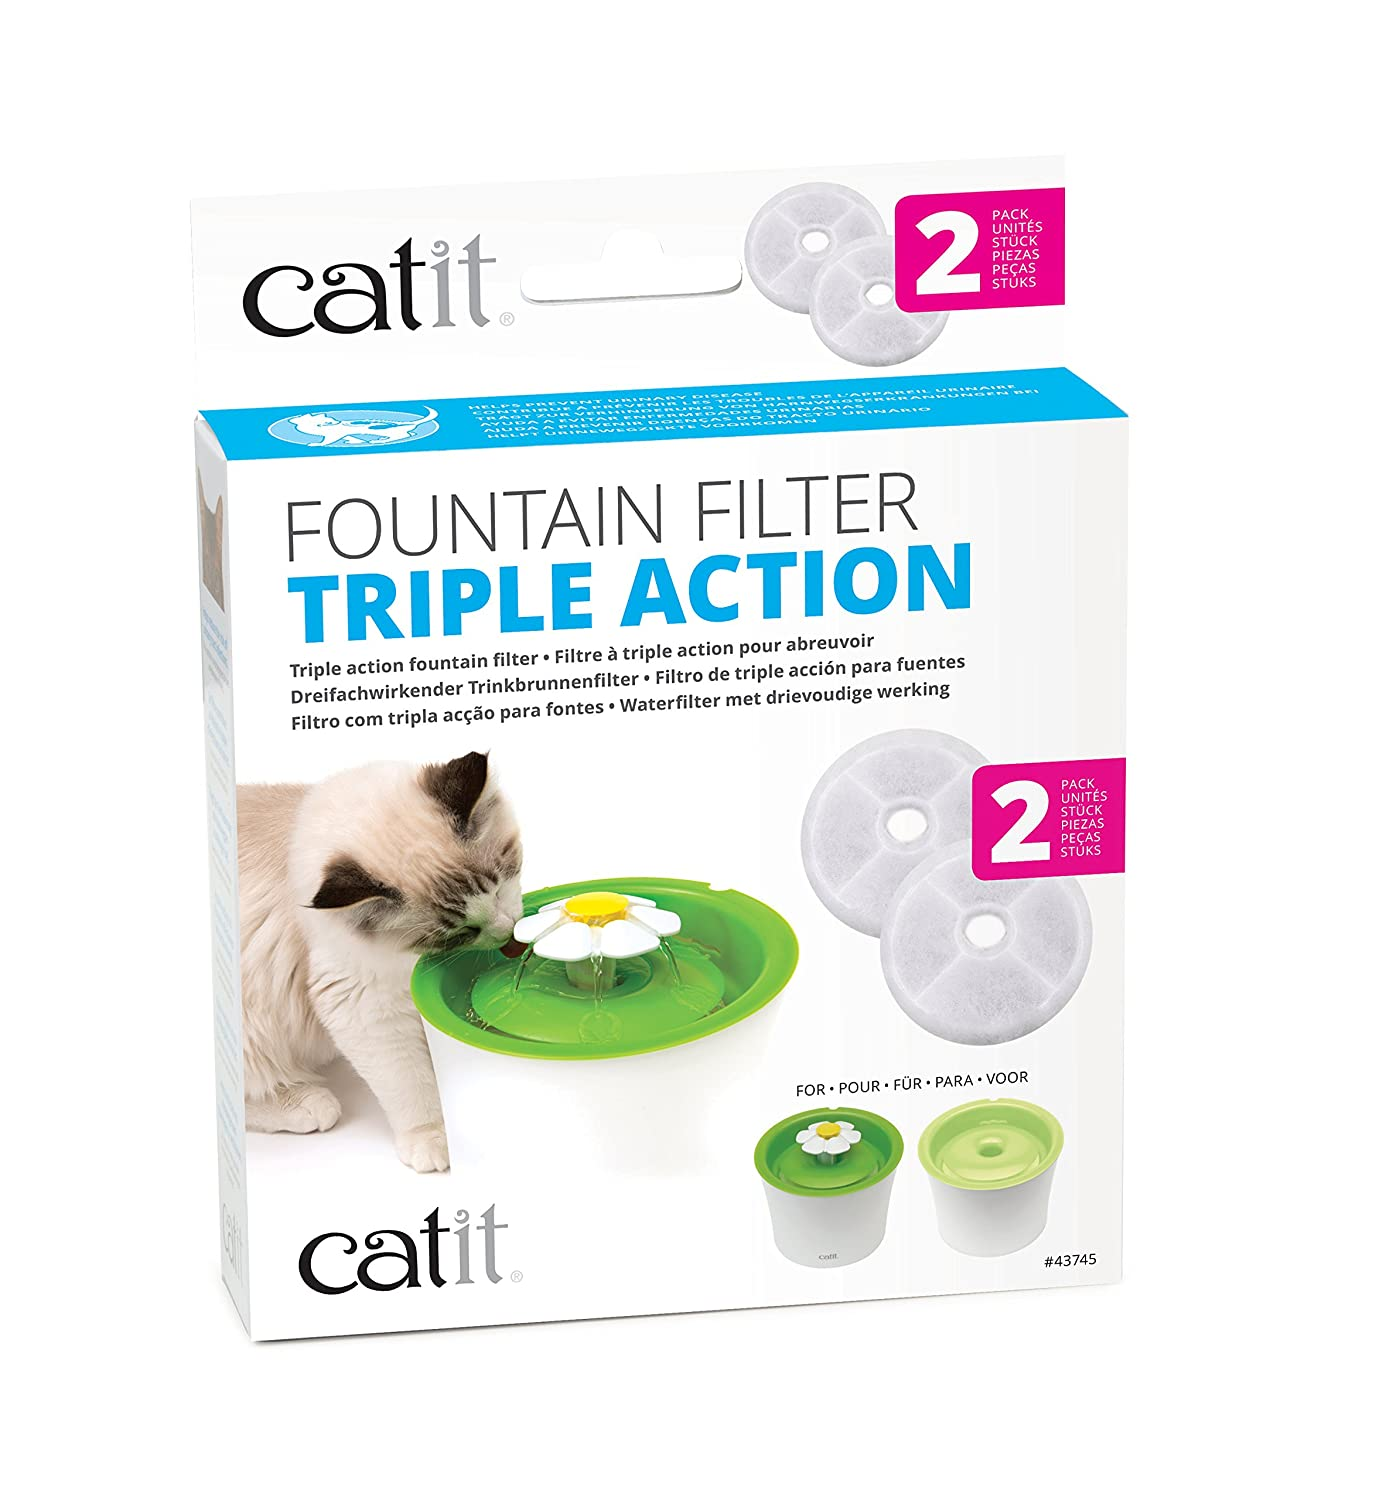 Catit 43745 Triple Action Fountain Filter 2 Pack